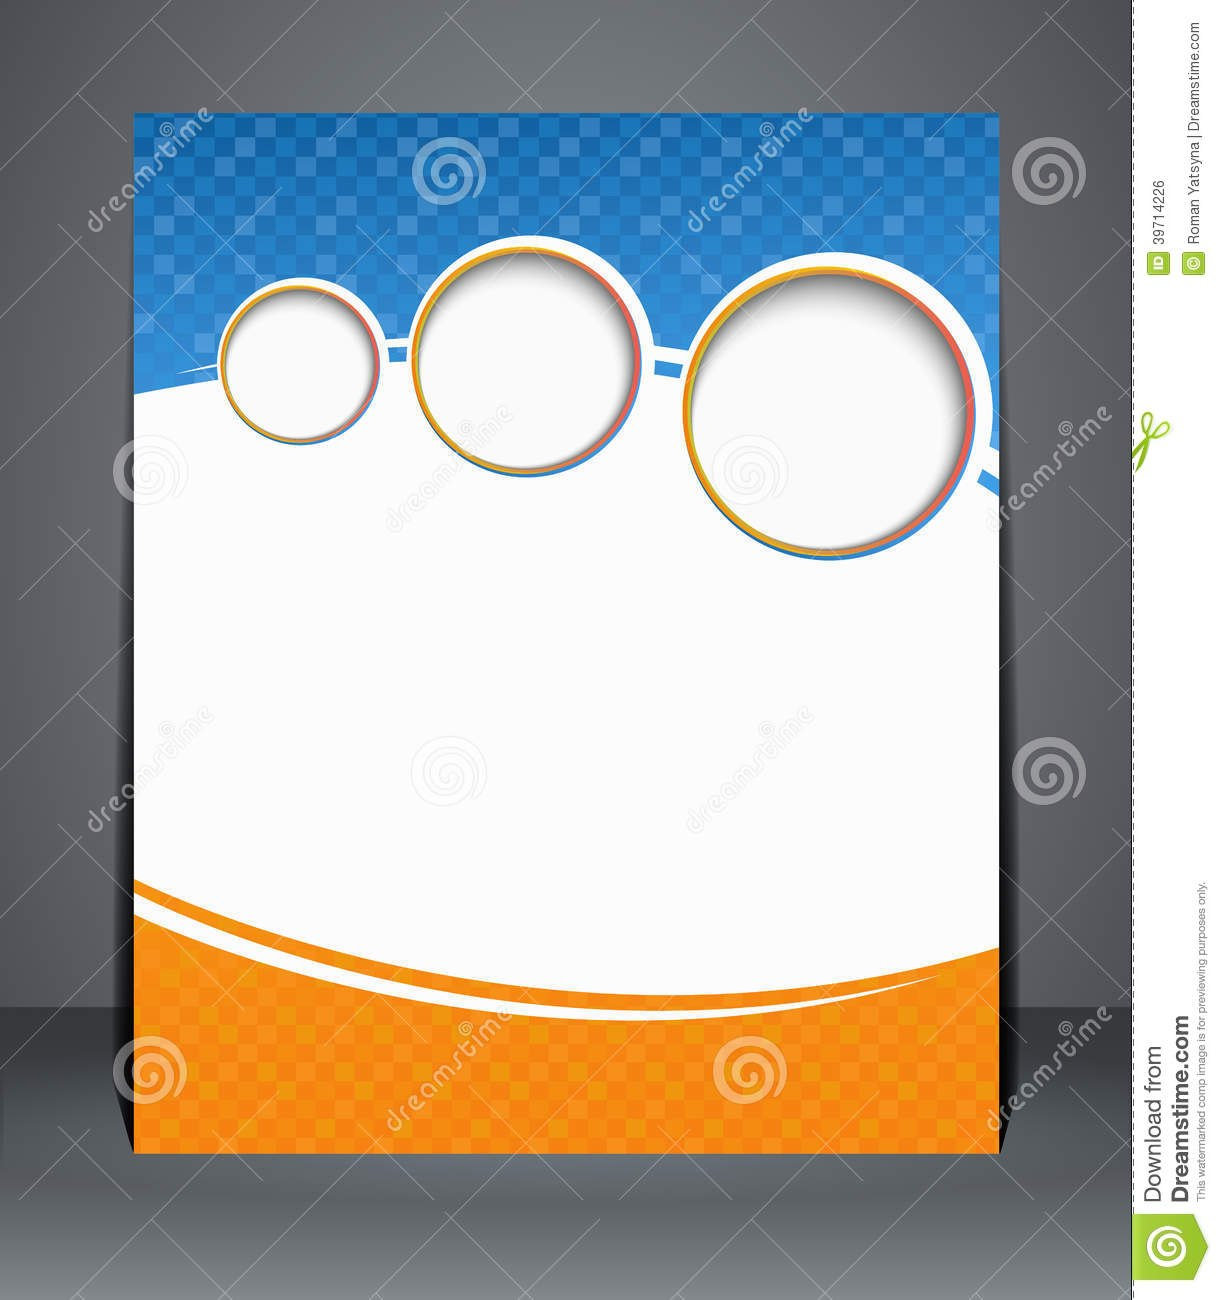 Flyer Design Template Or A Magazine Cover In Blu Stock Vector In Blank Templates For Flyers